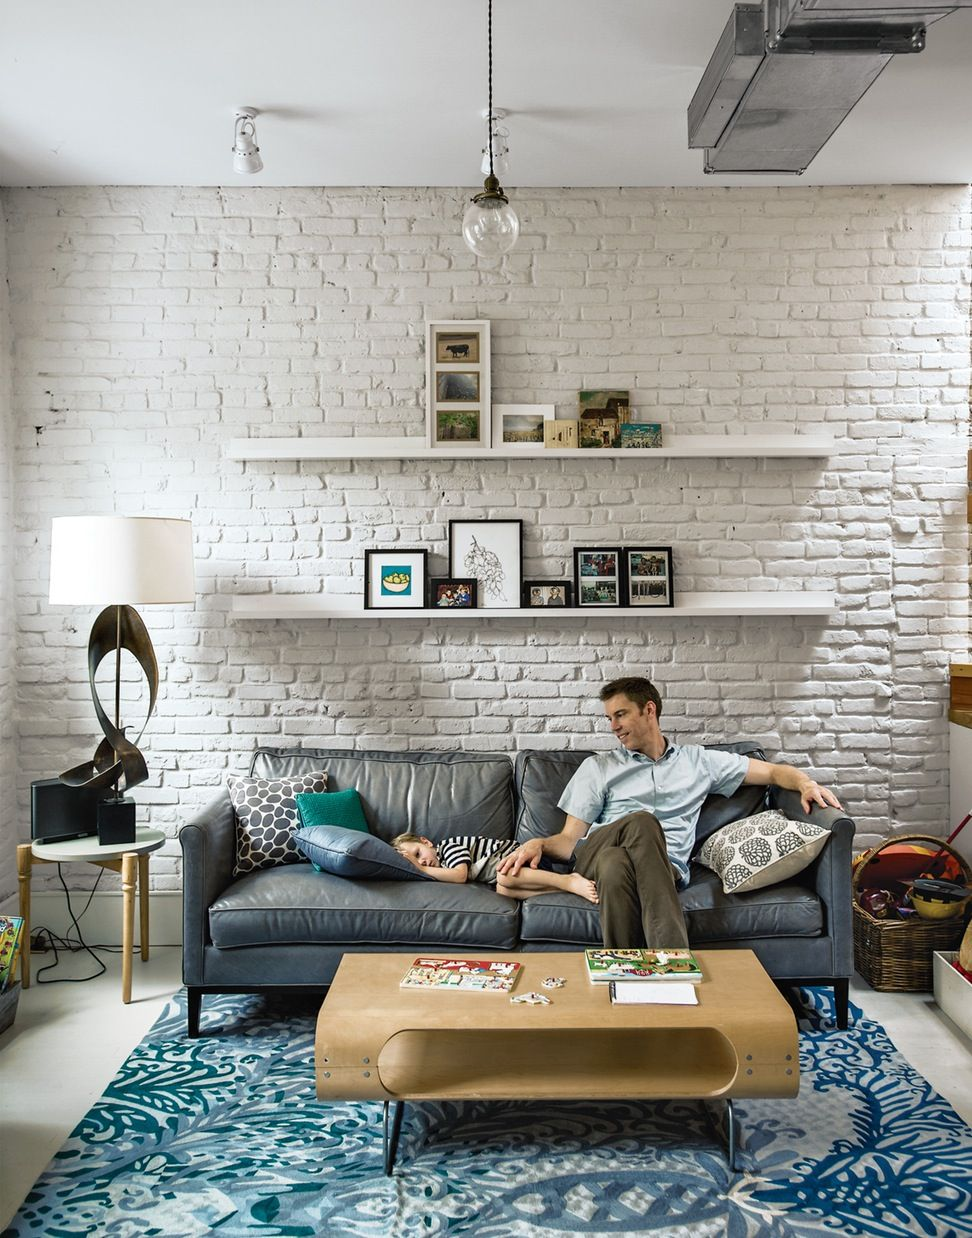 30 White Brick Wall Living Rooms That Inspire Your Design Creativity Whitewashed Bricks Painted Brick Living Room Brick Wall Living Room Brick Interior Wall